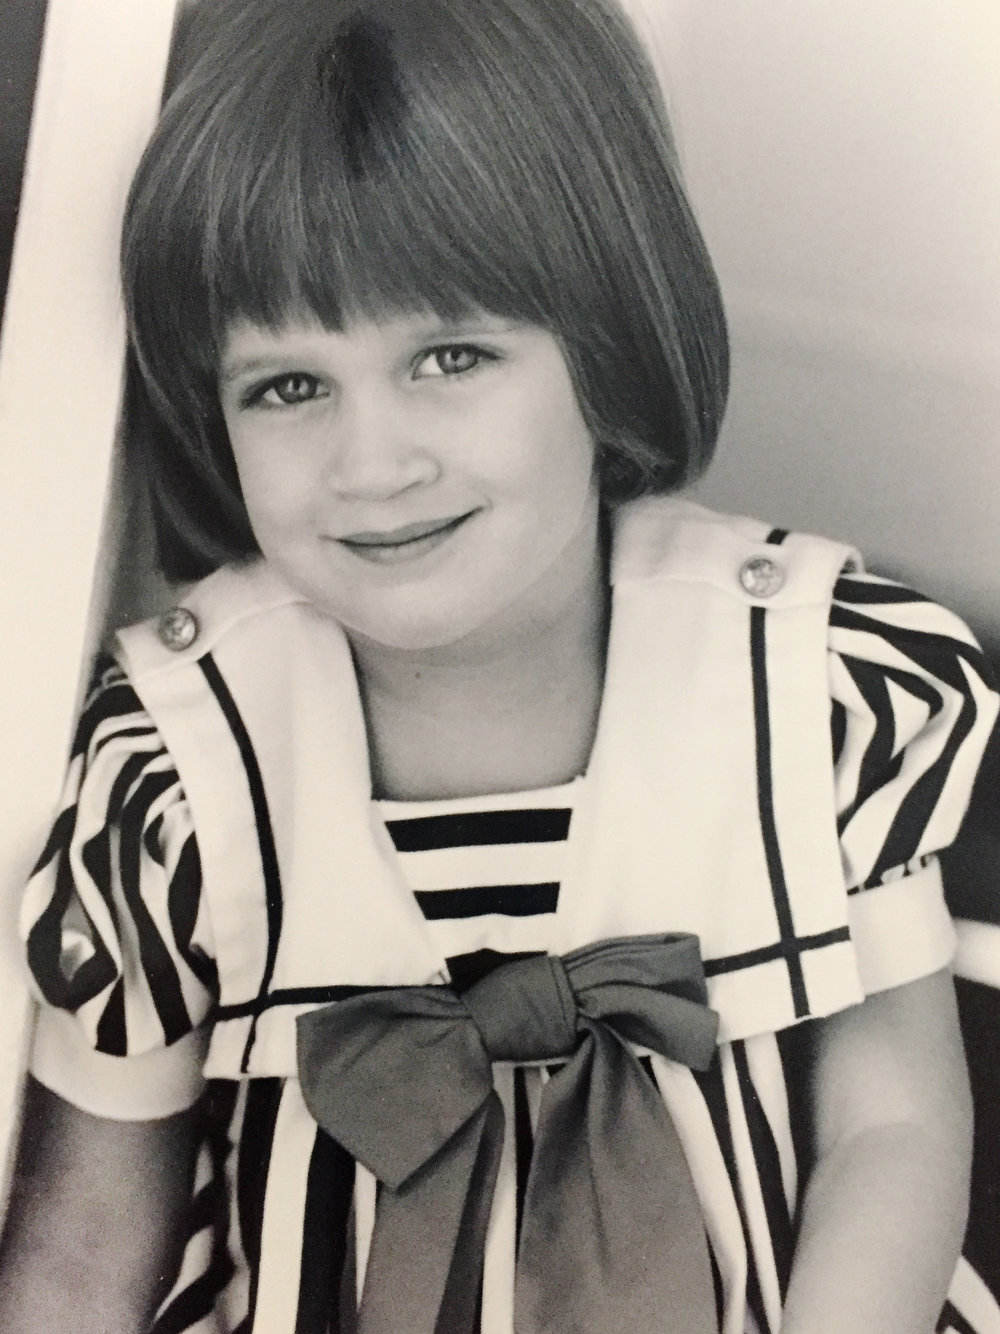 I modeled as a little girl in New York City. My Nana was a model and off broadway actress. This was my headshot when I was 3yrs old.